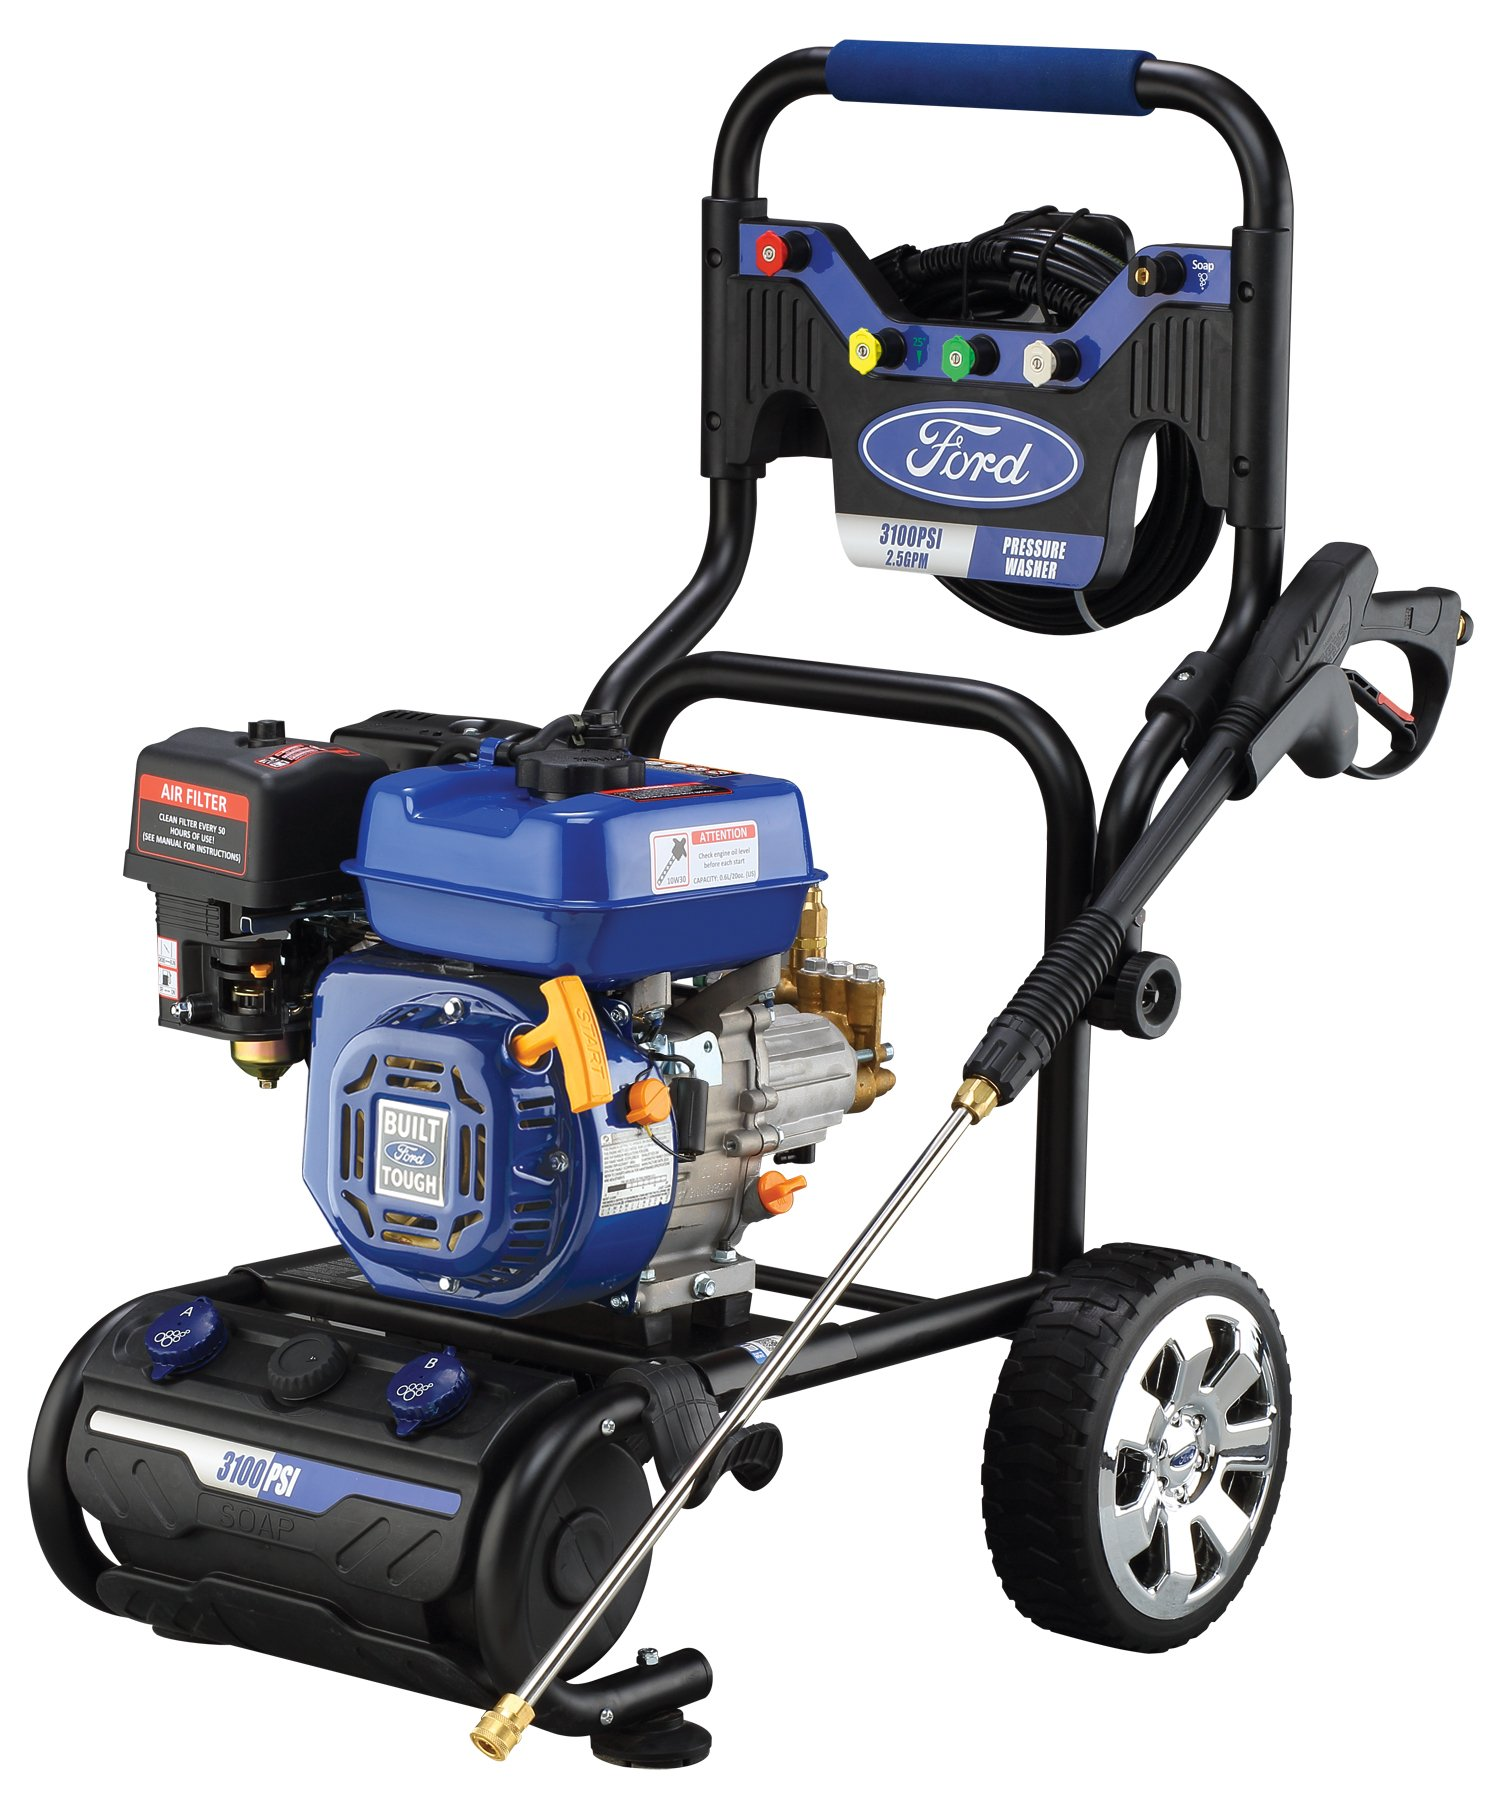 ford-fpwg3100h-j-gas-powered-3100psi-best-commercial-pressure-washers-reviews